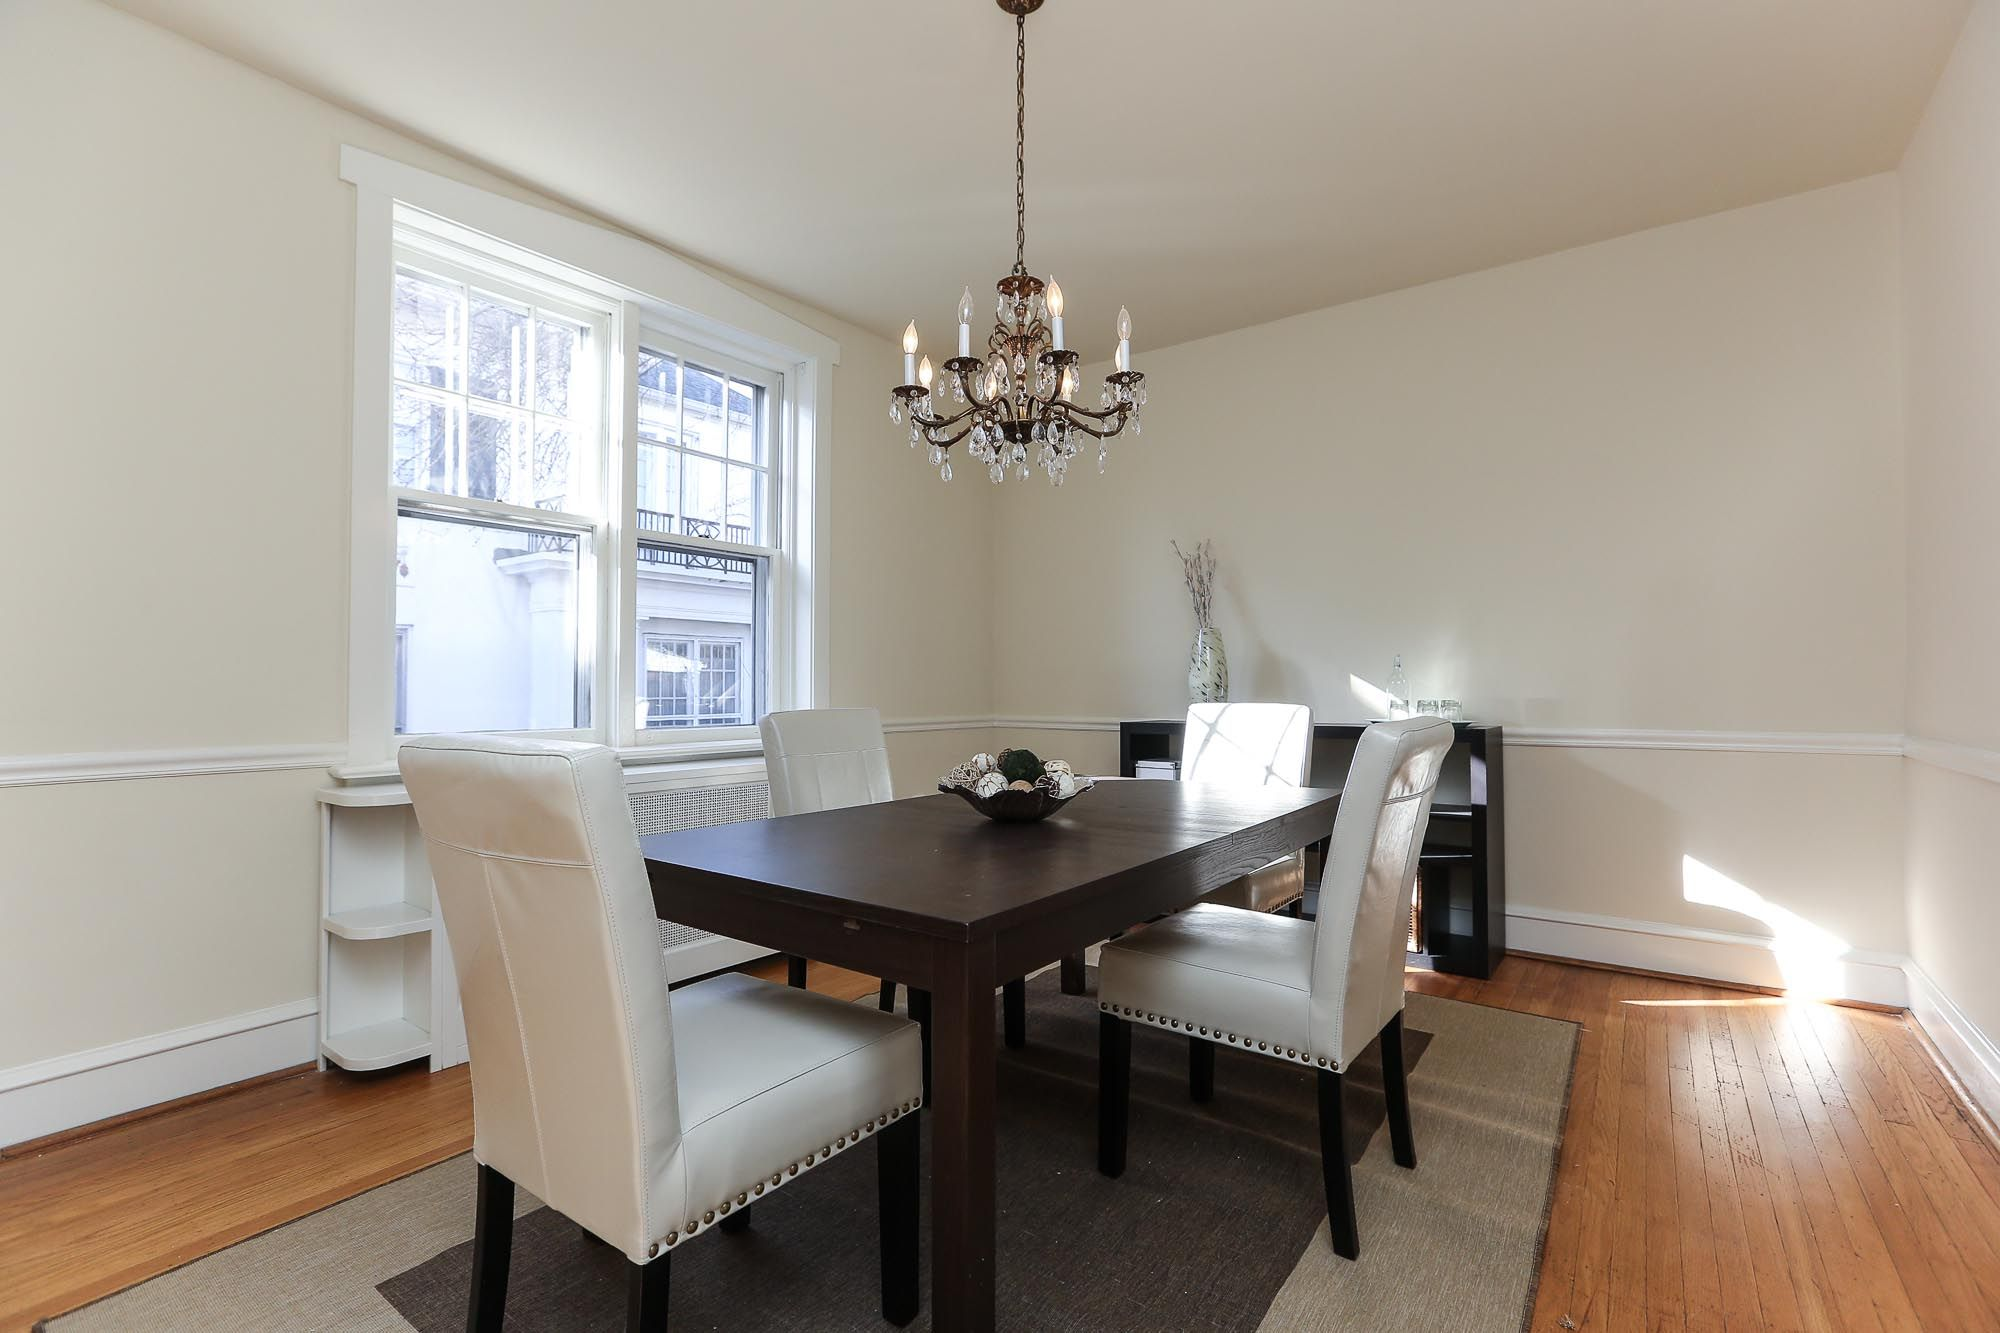 Dining Home, Home decor, Dining